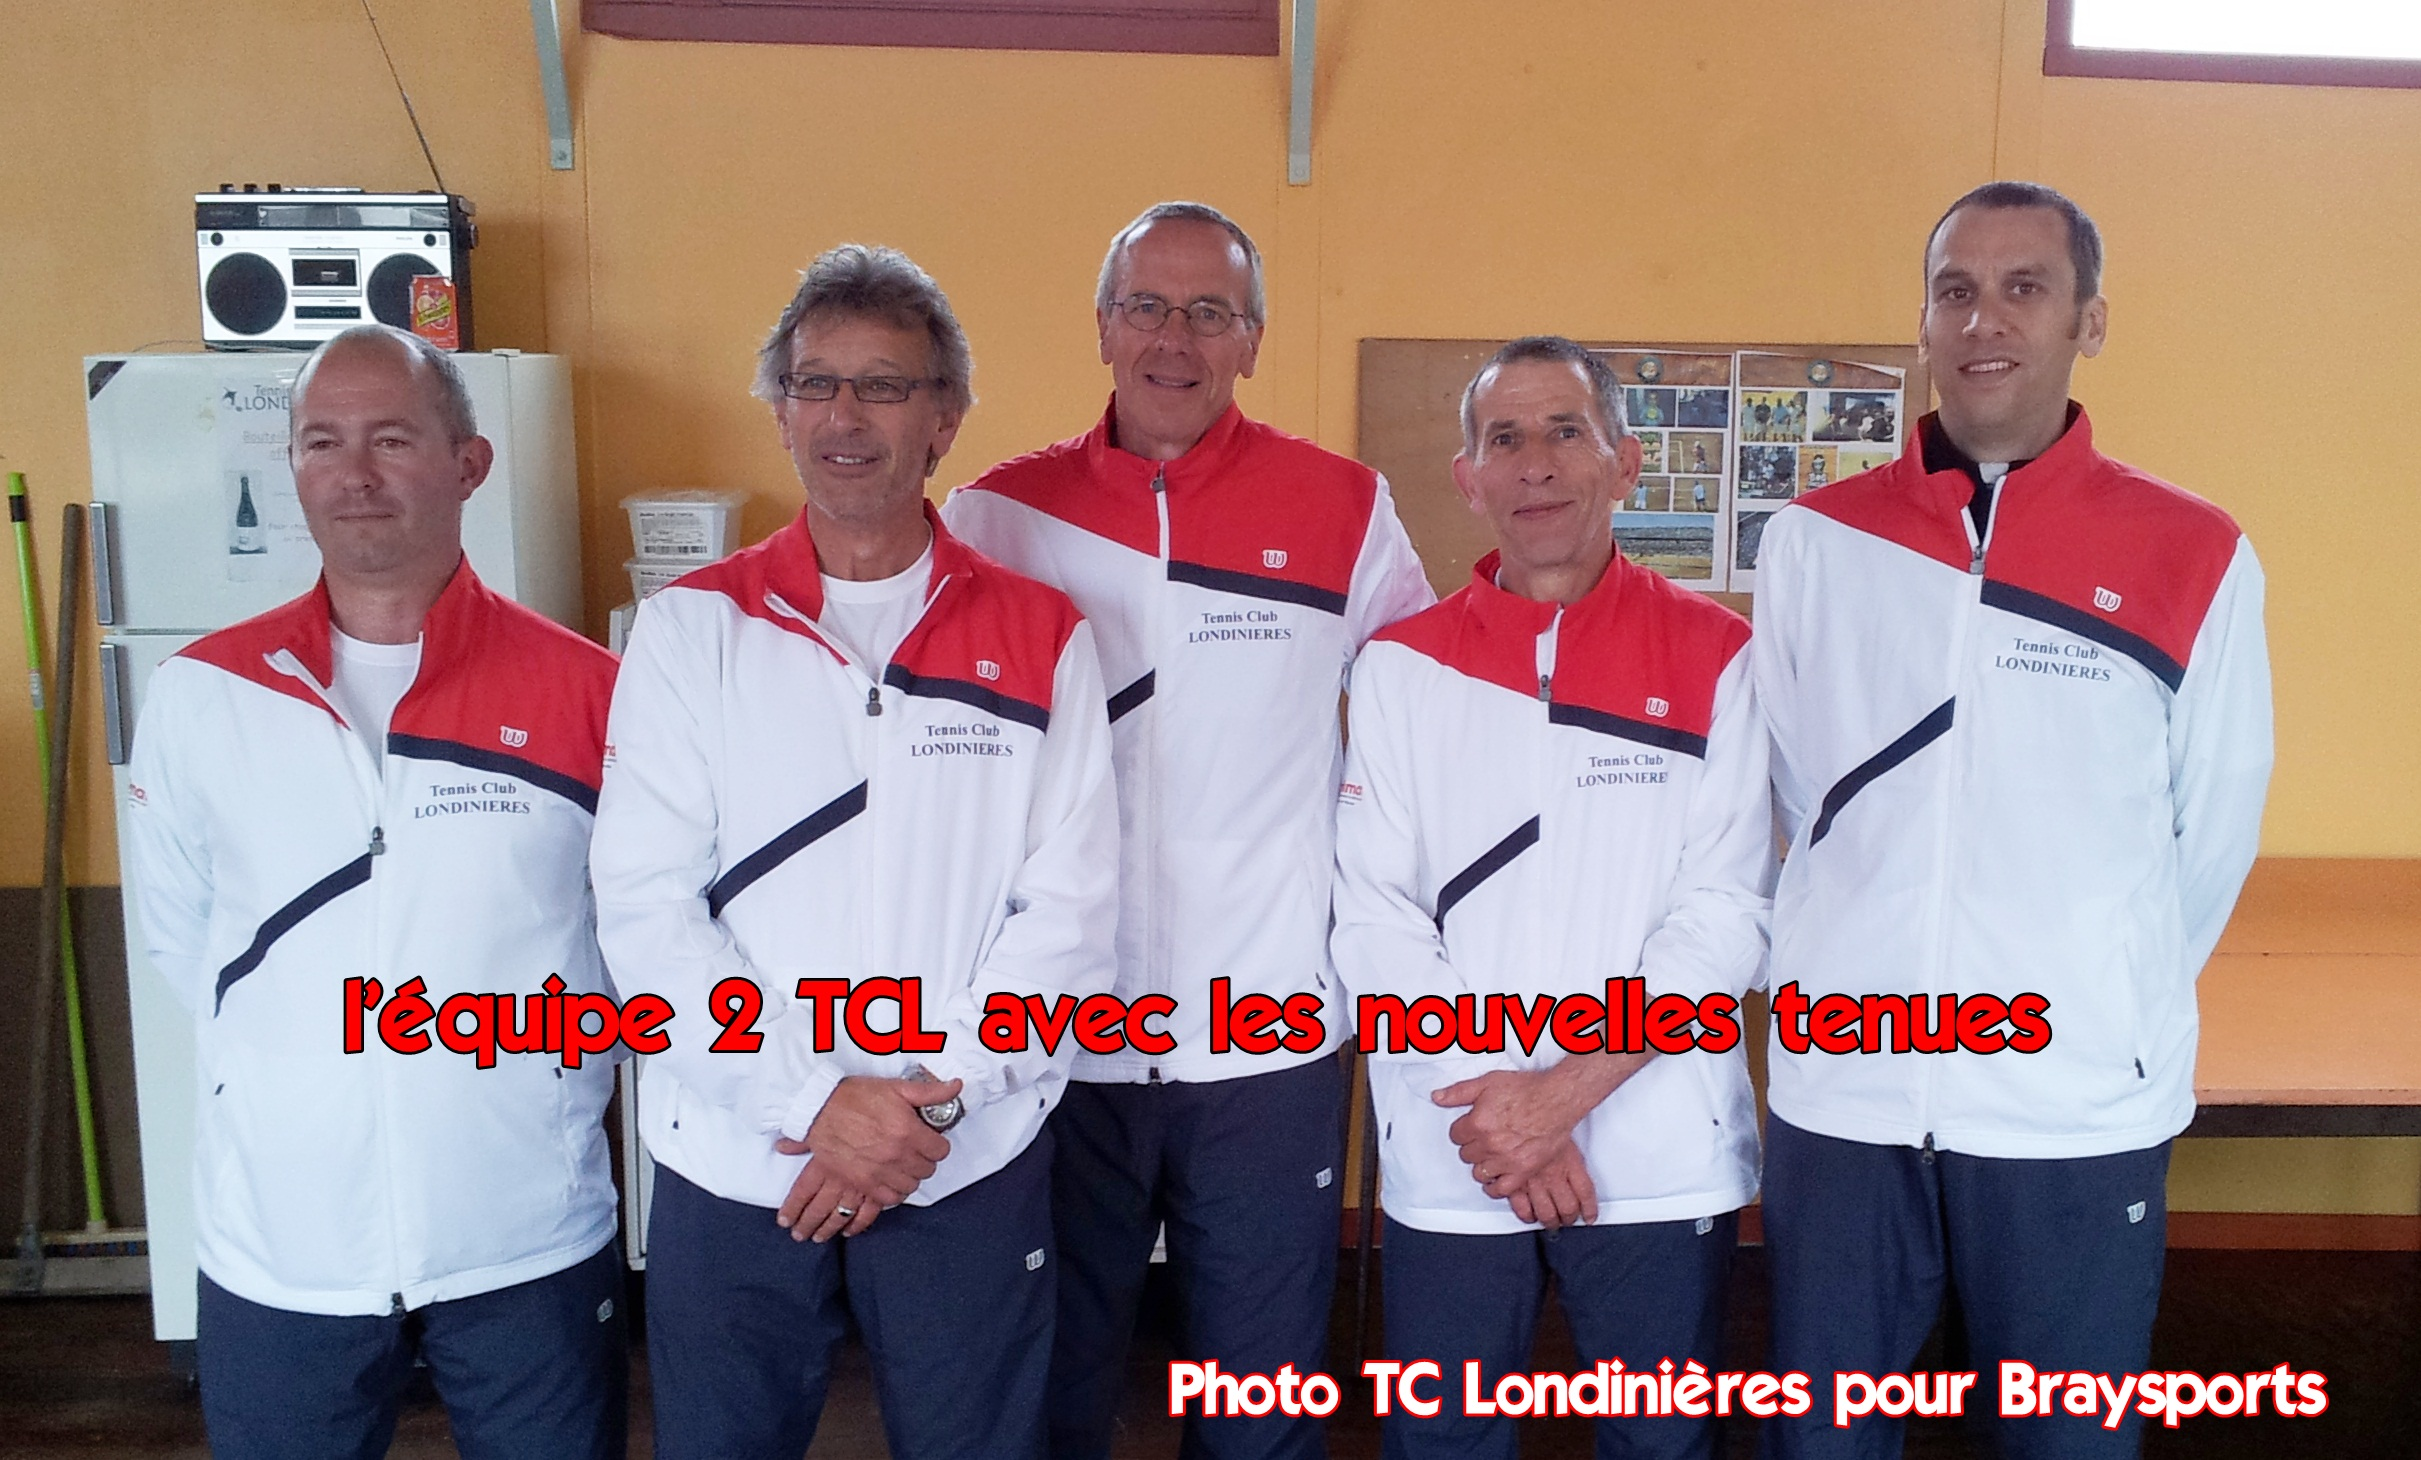 Rencontres tcl